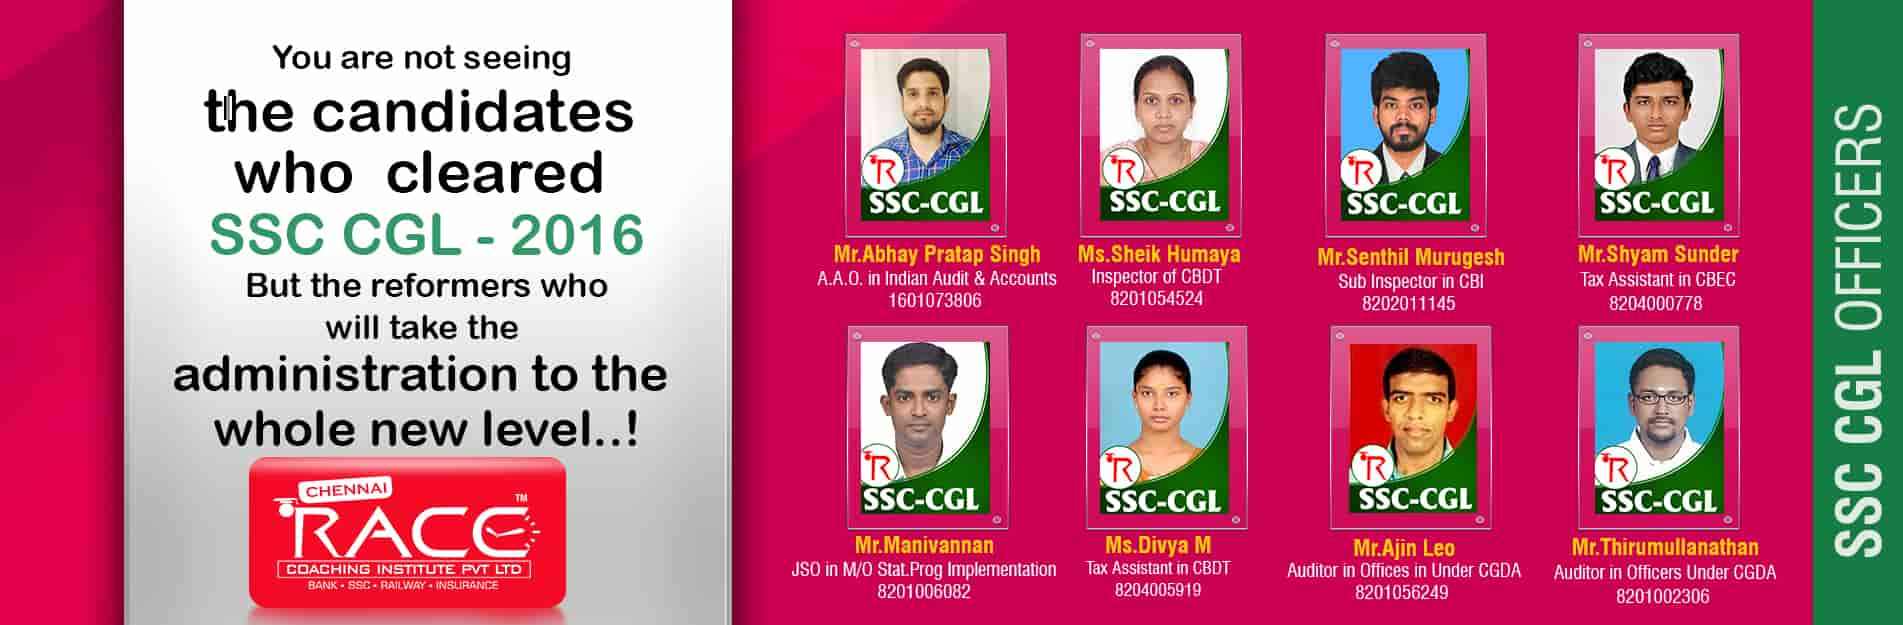 chennai race institute best coaching institute for bank po ssc insurance exams